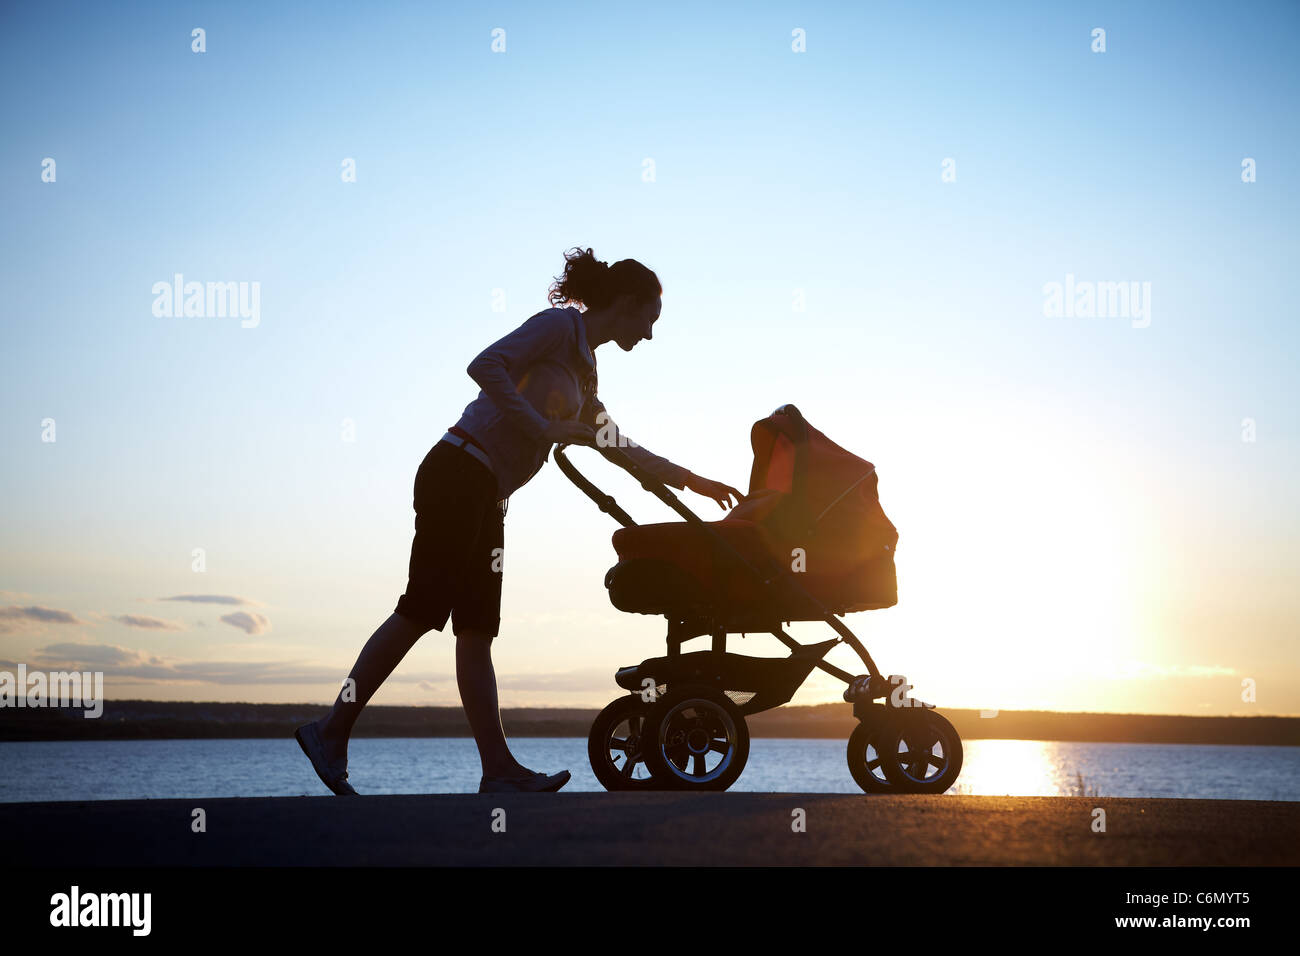 Silhouette of young mother enjoying motherhood - Stock Image